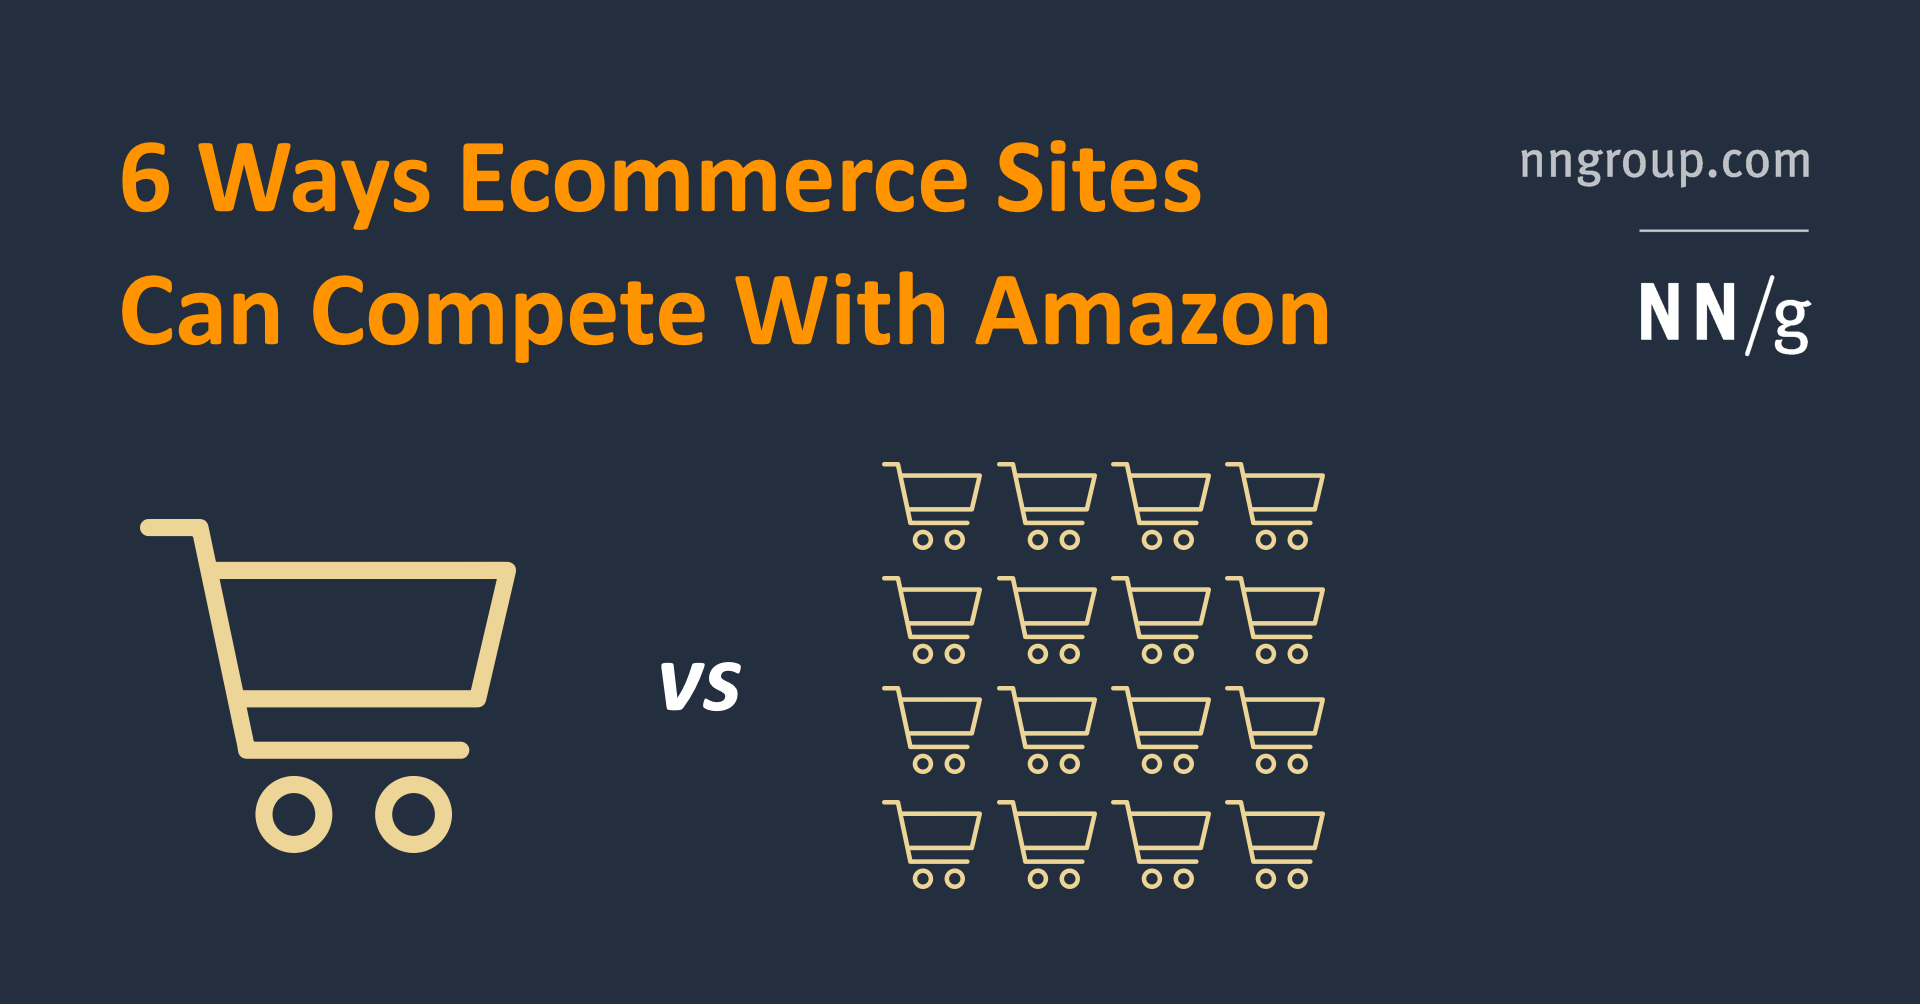 e336bc005 6 Ways Ecommerce Sites Can Compete With Amazon